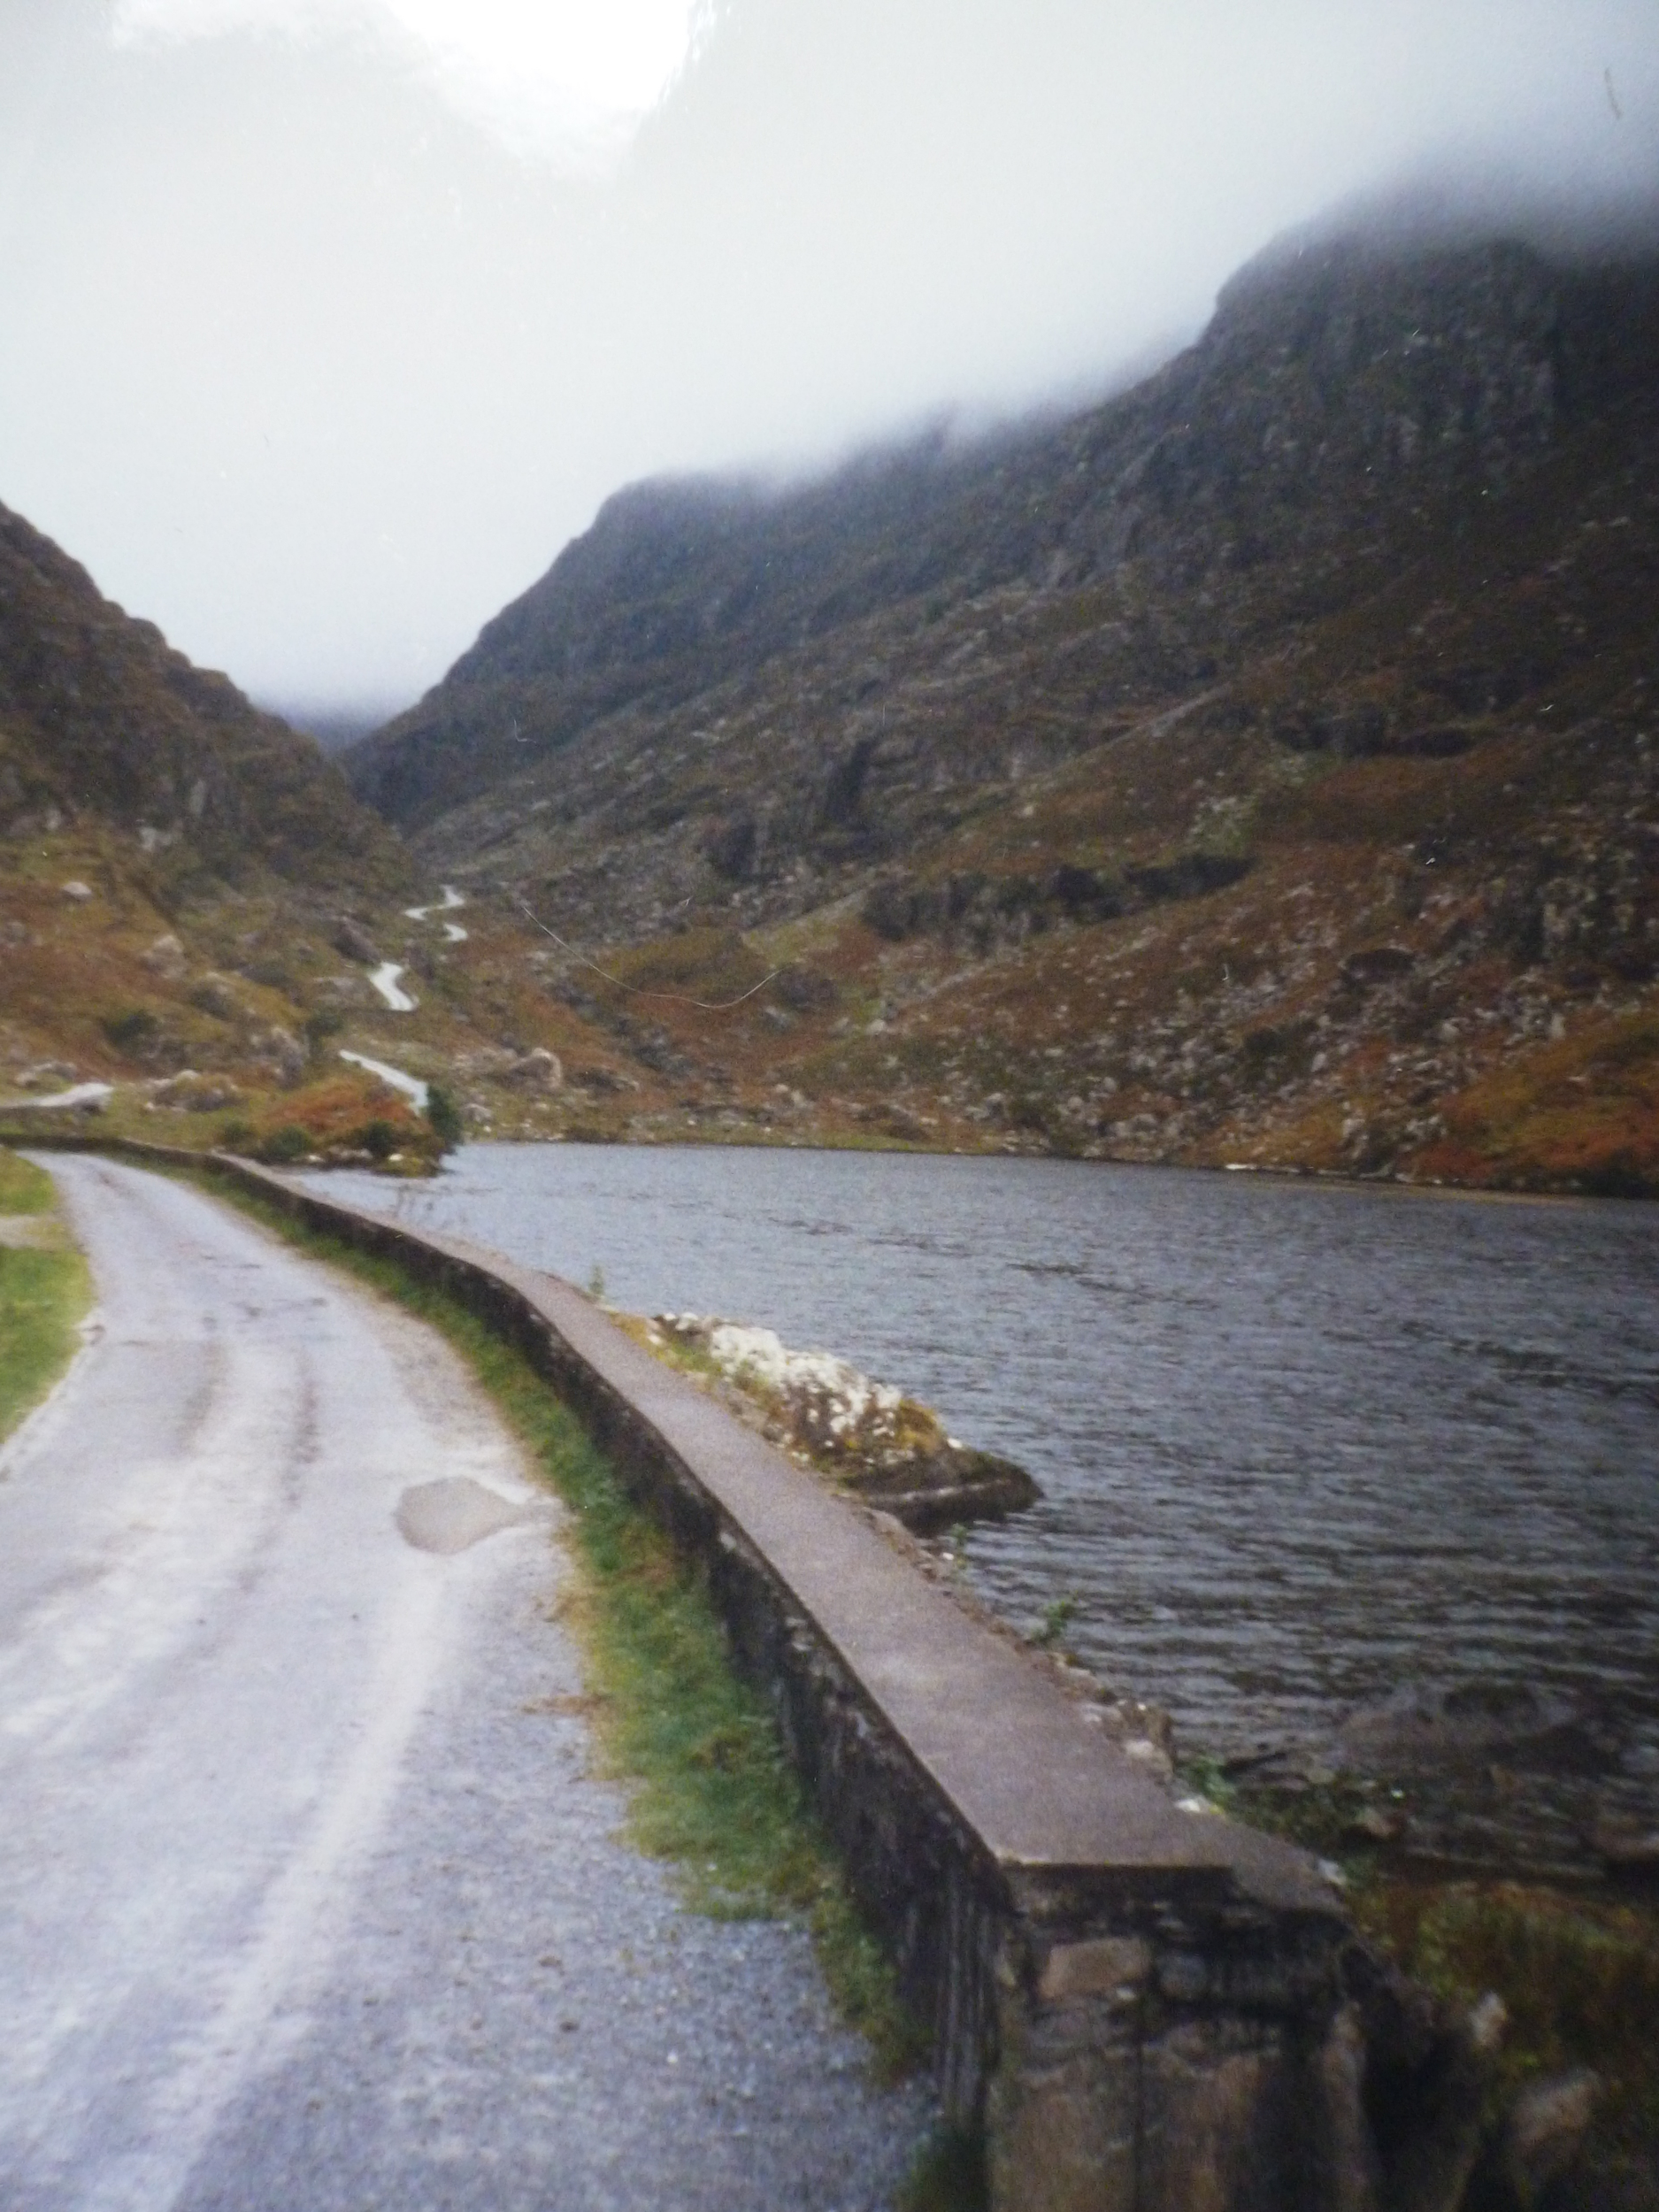 An old picture from a trip to Western Ireland I took in college. The trip that started my love for Irish family sagas.